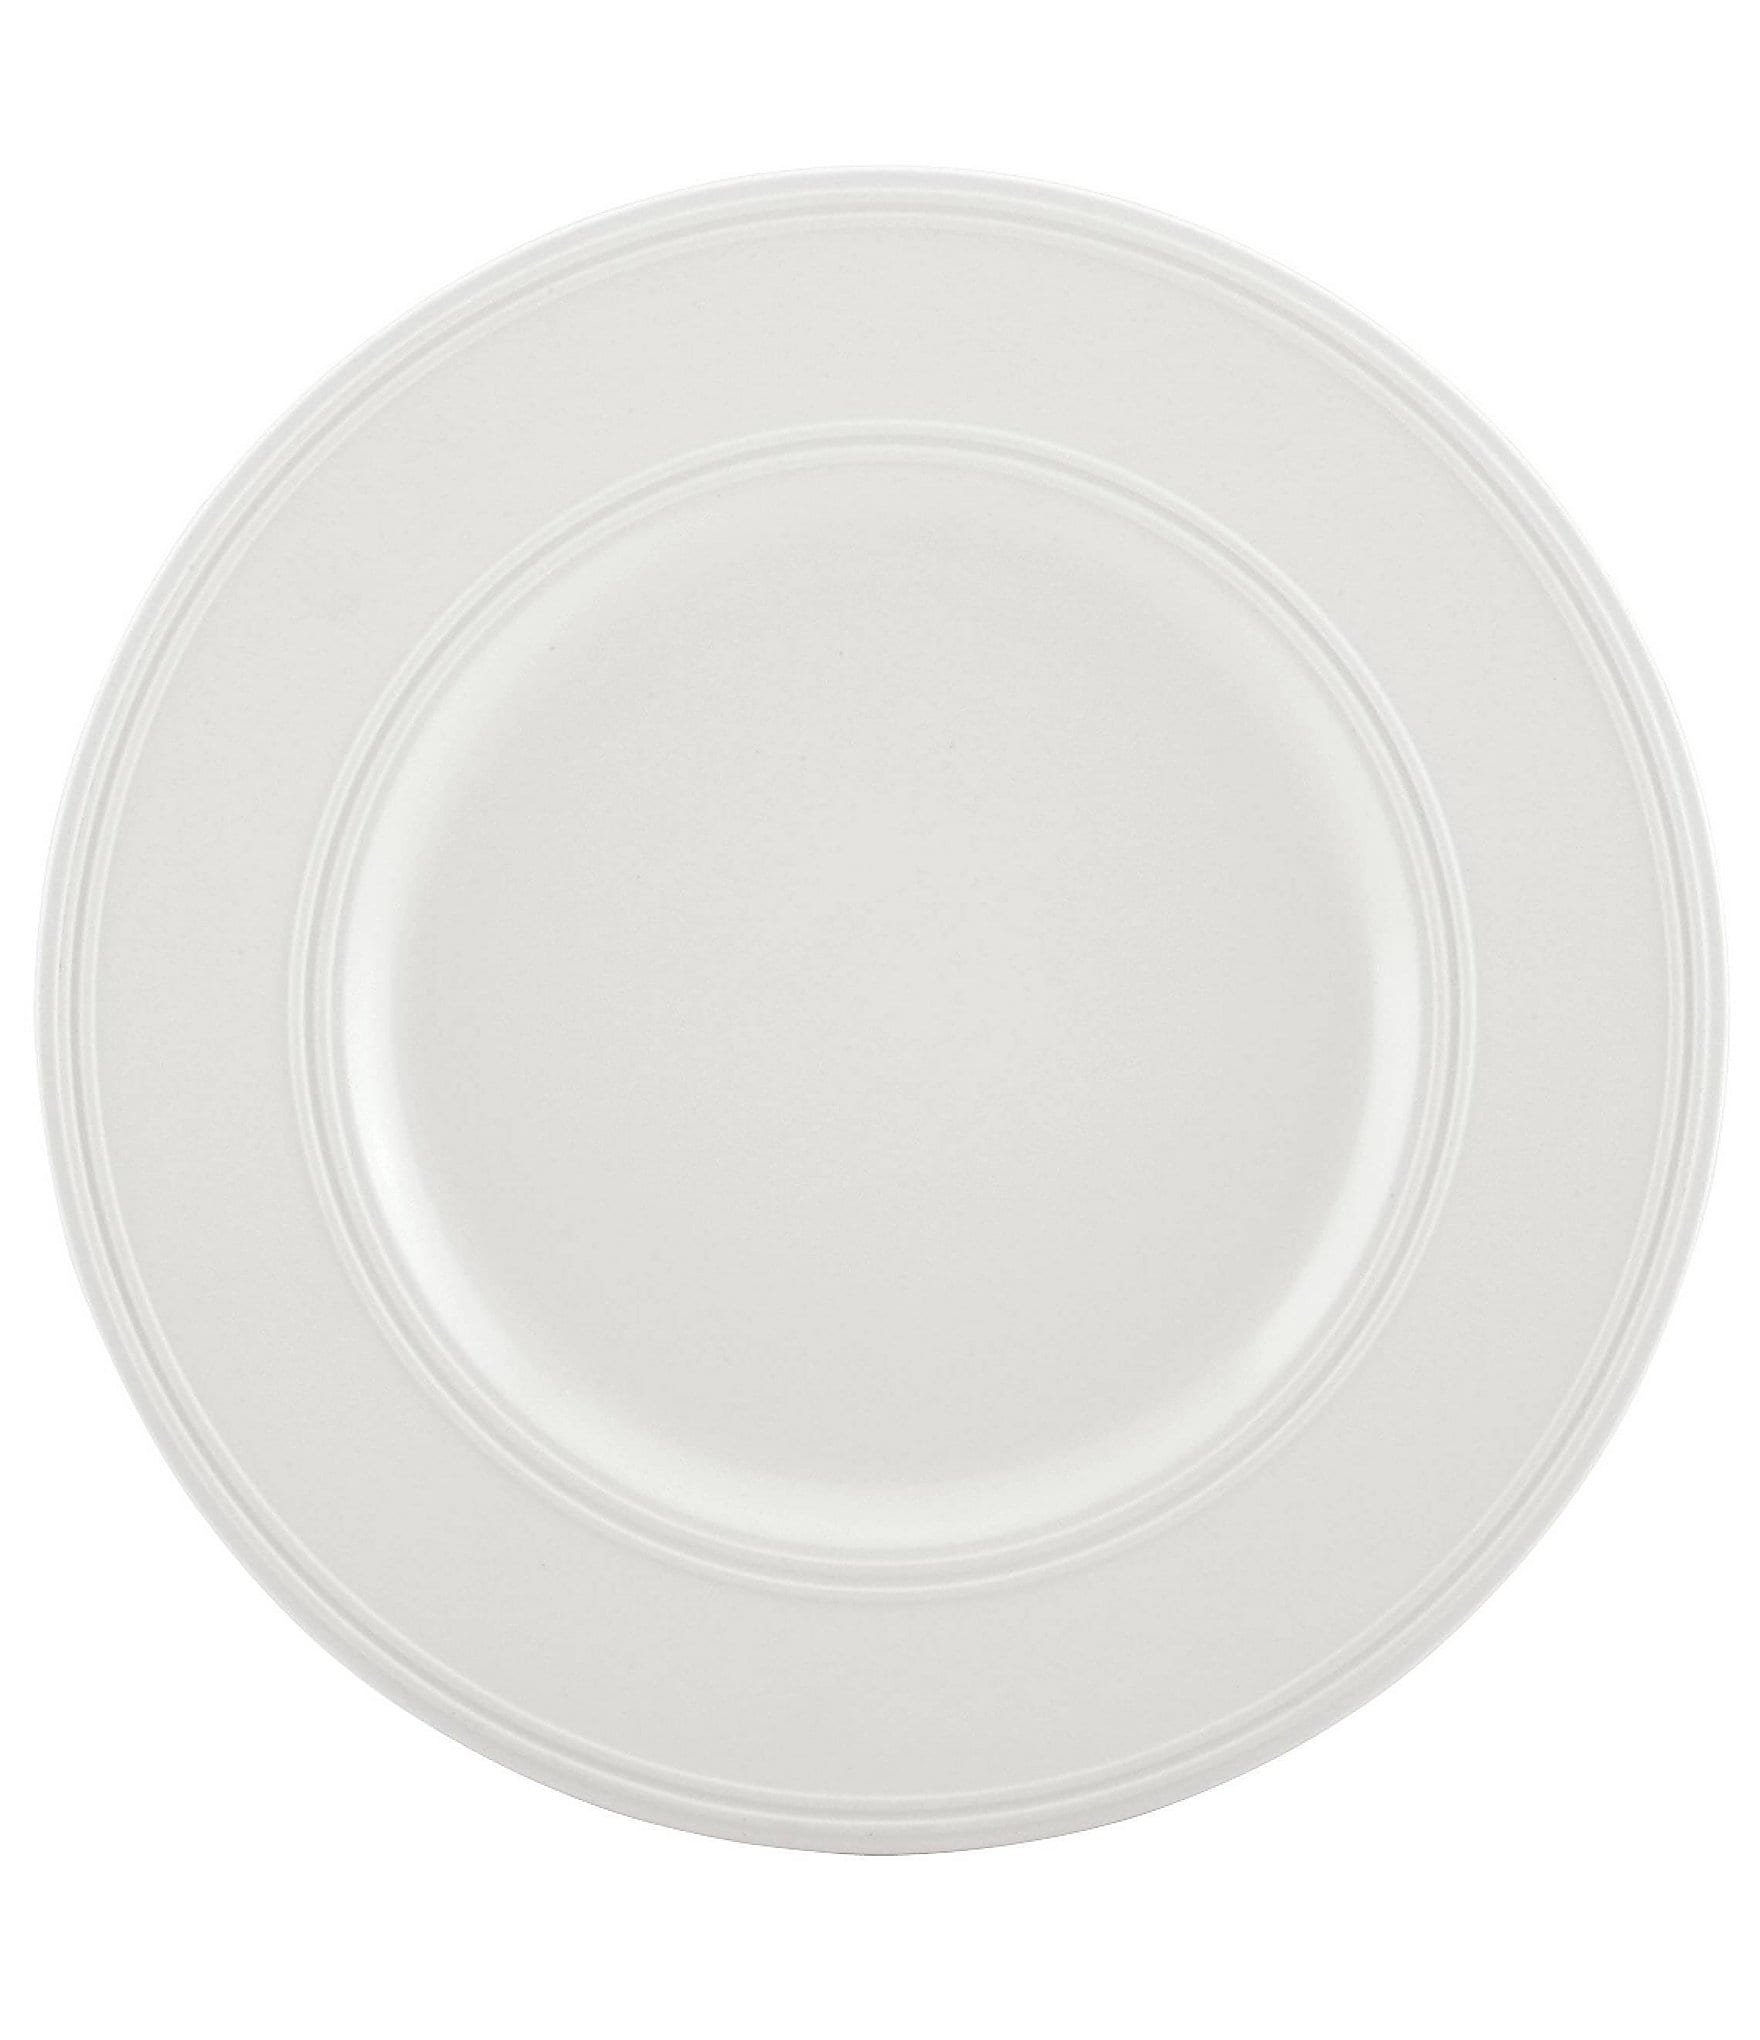 kate spade new york Casual Everyday Dinnerware Plates  Dishes \u0026 Sets | Dillards  sc 1 st  Dillard\u0027s : white dinner plates cheap - pezcame.com